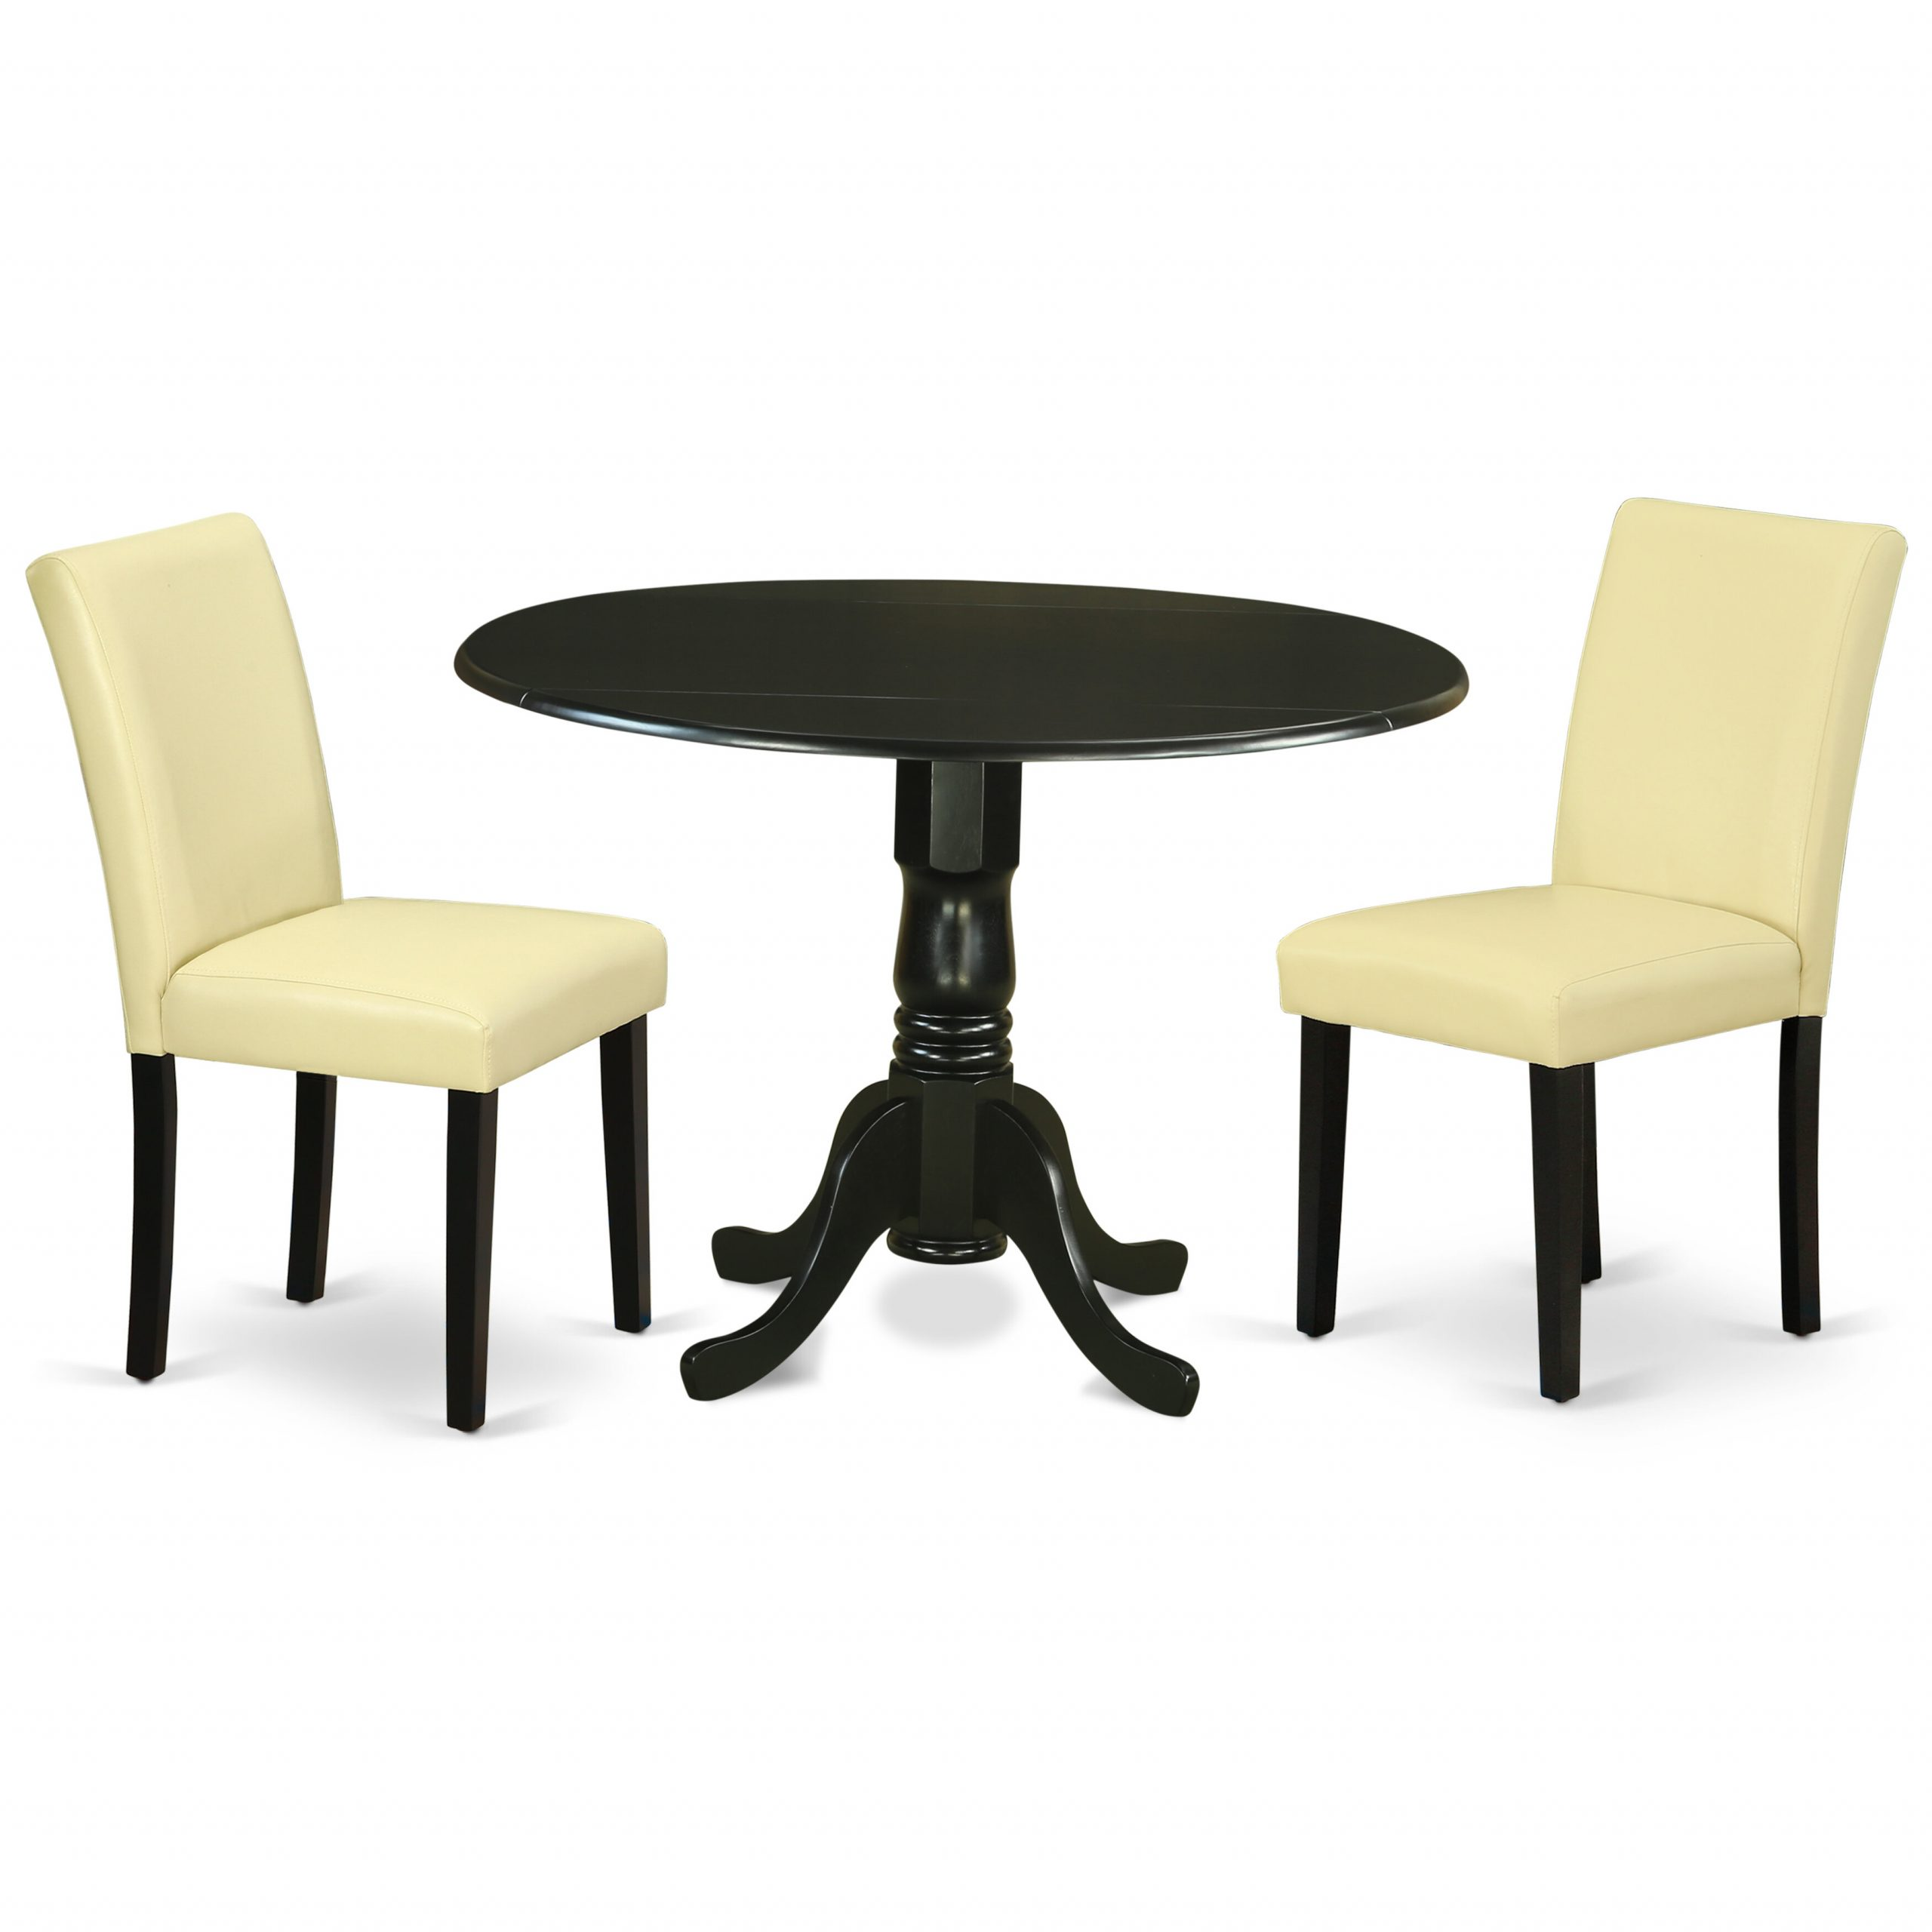 Cecile 3 Piece Drop Leaf Solid Wood Dining Set Pertaining To Recent Mahogany Shayne Drop Leaf Kitchen Tables (View 21 of 25)